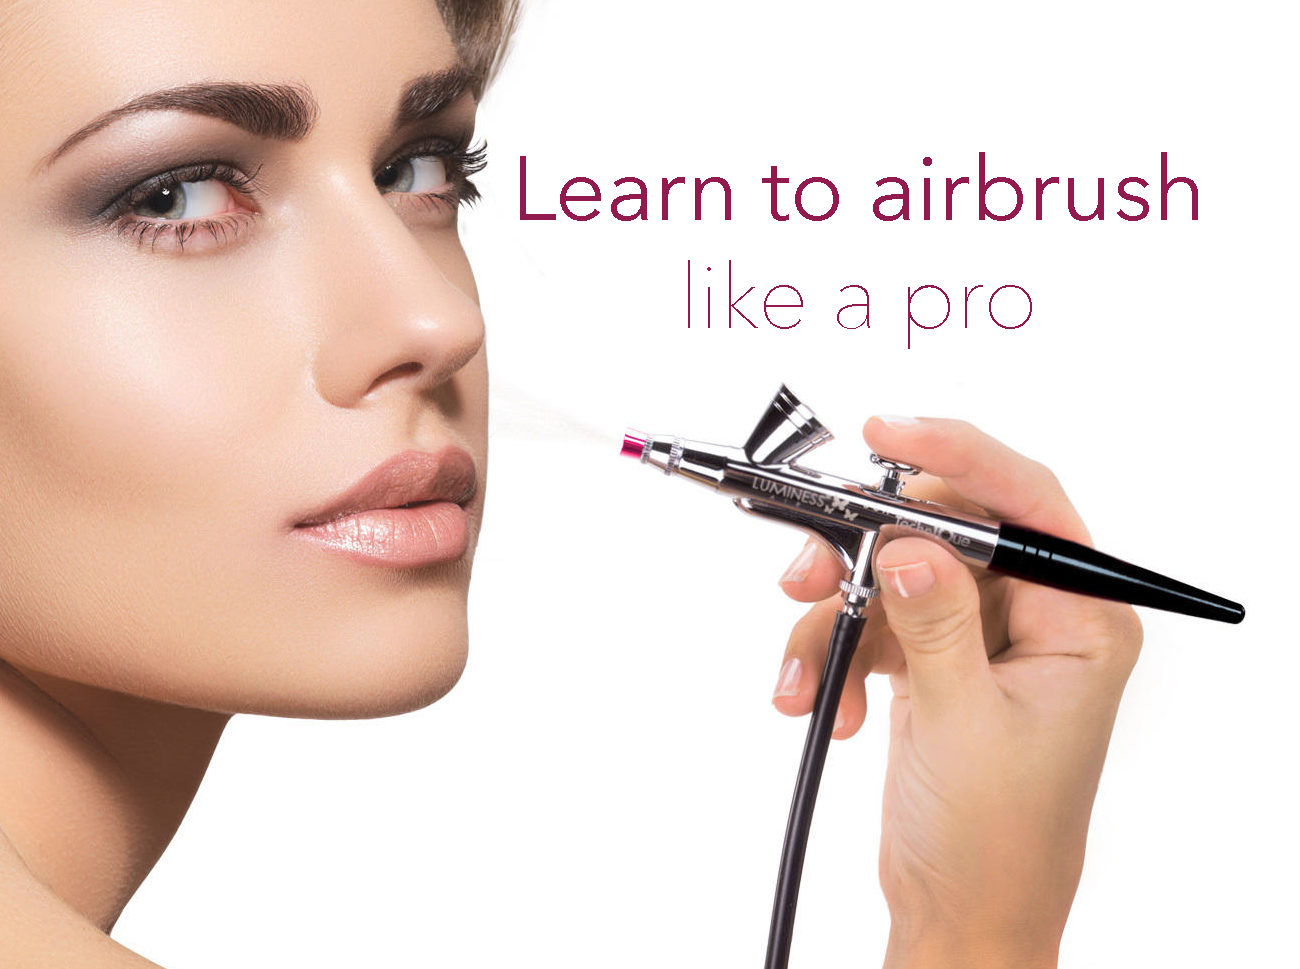 I've always wanted to learn how to airbrush but it looks